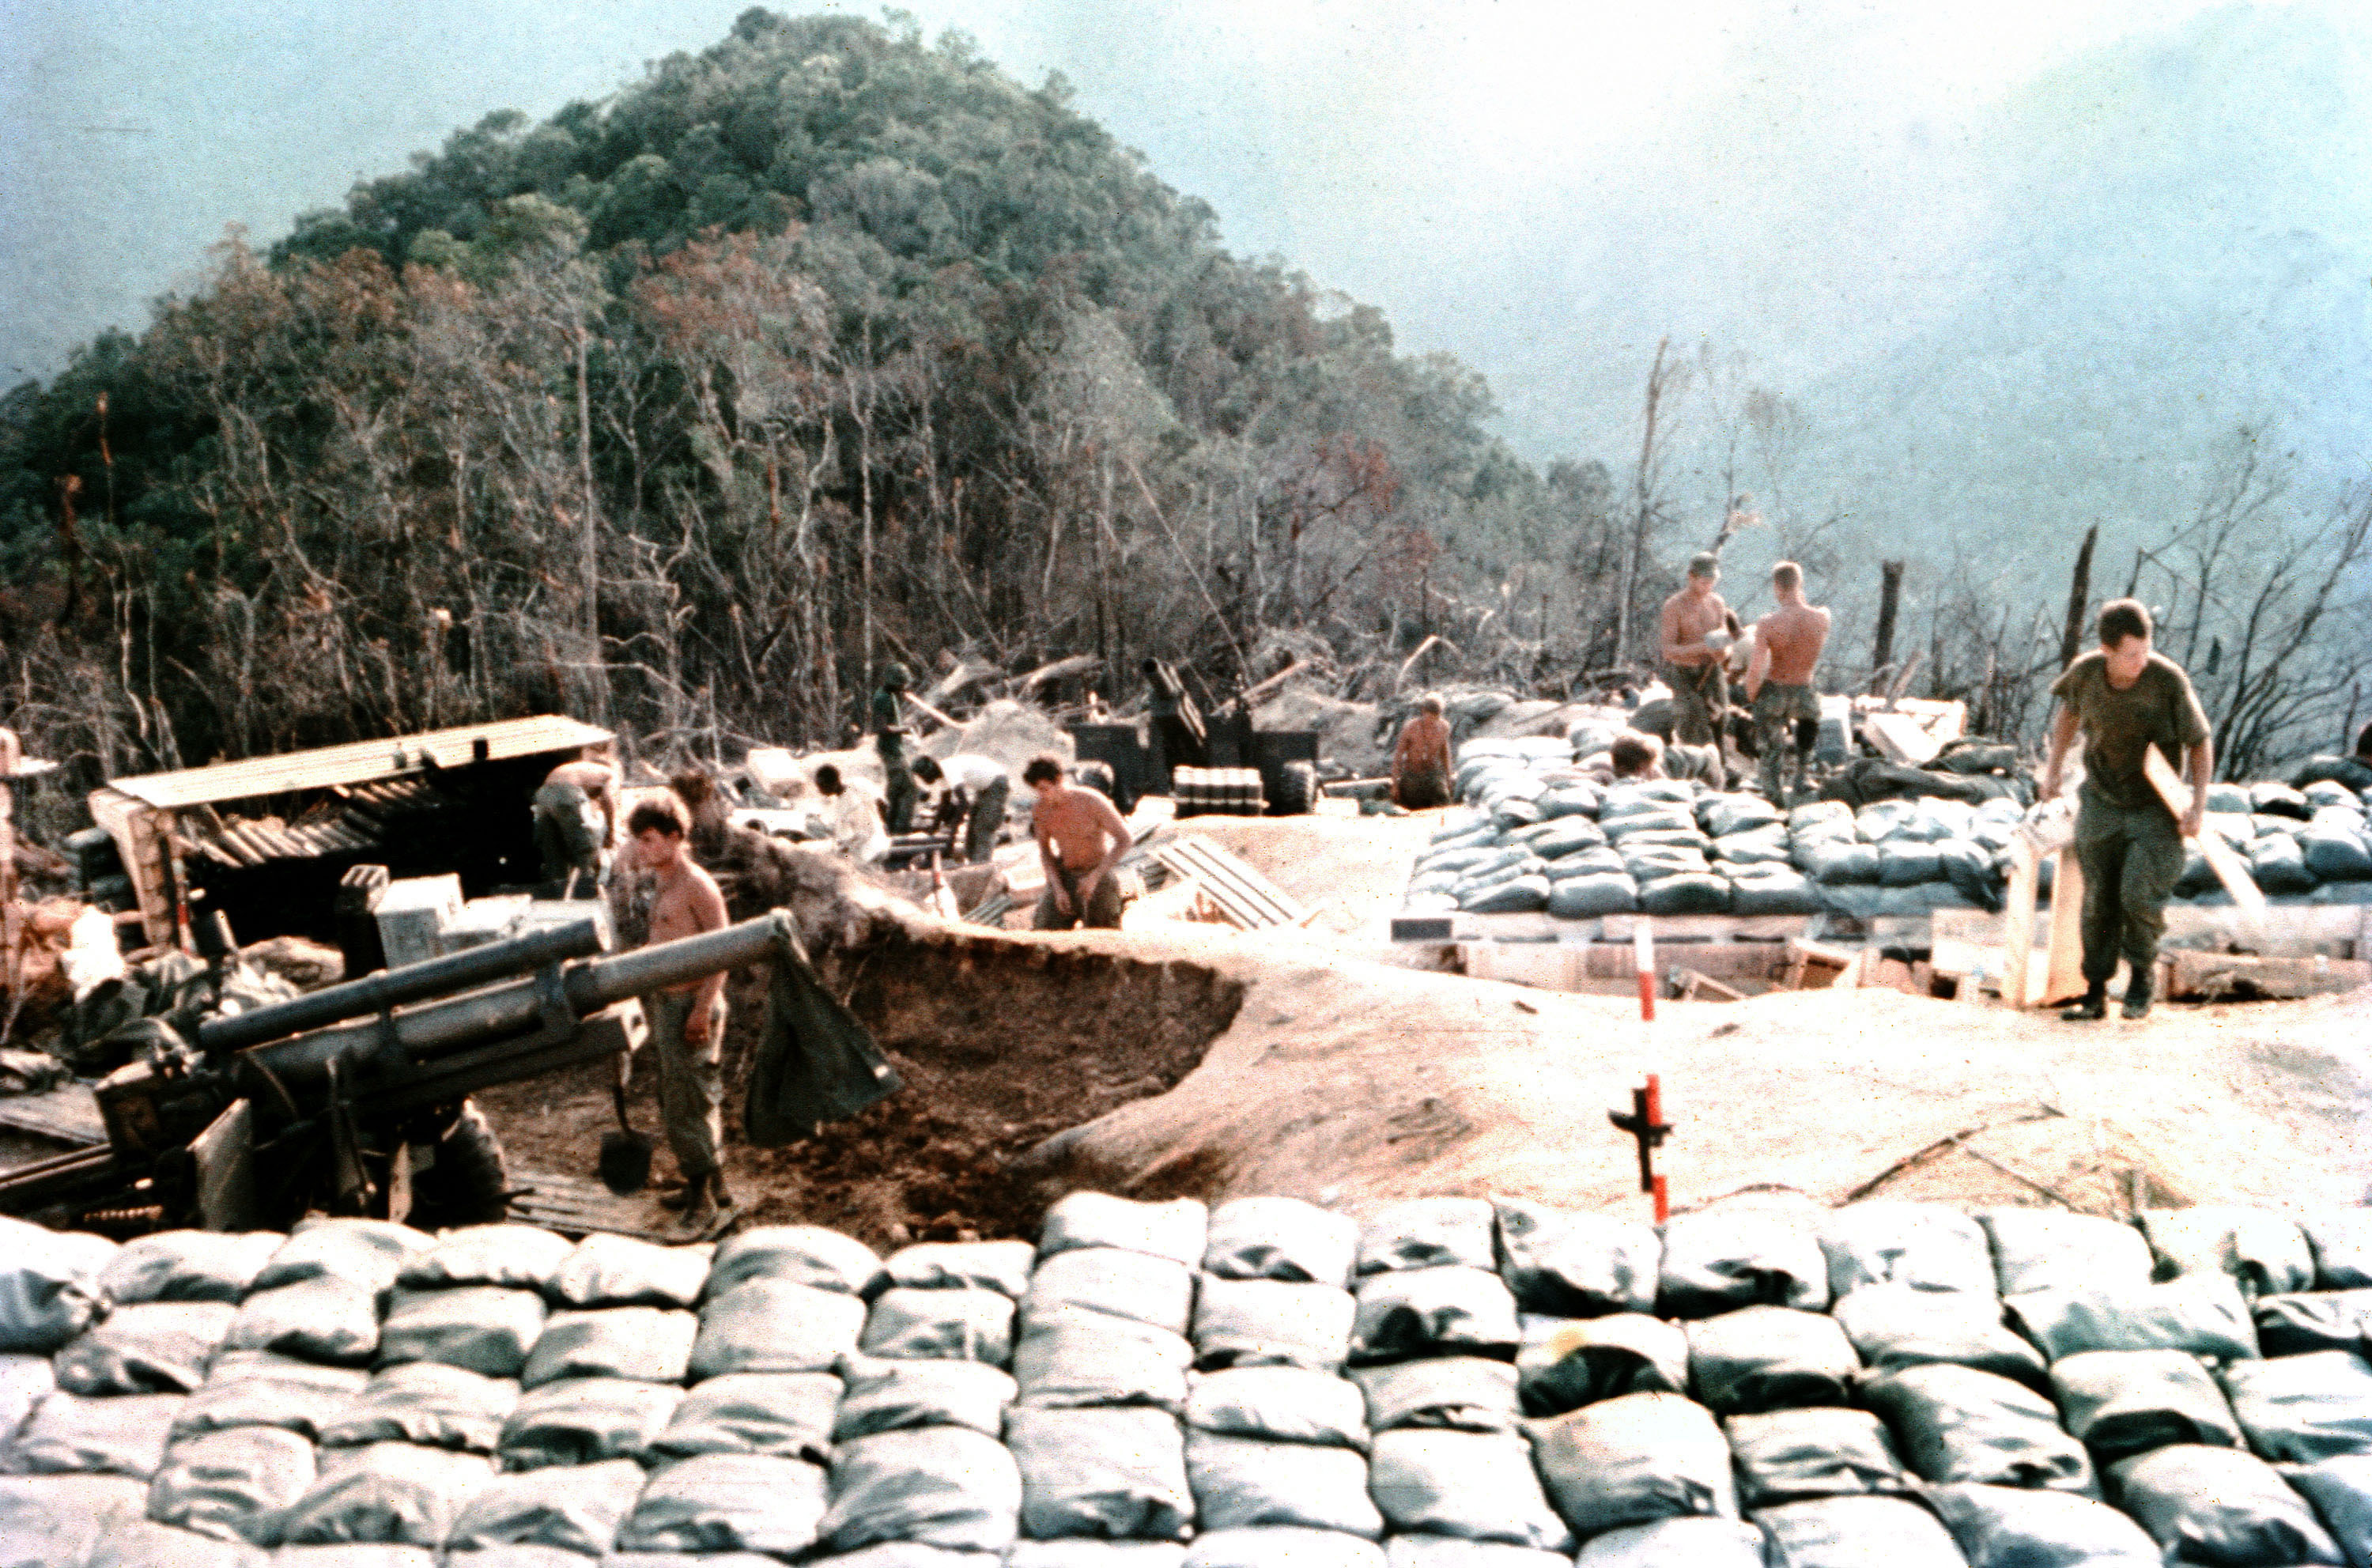 a history of war in vietnam Vietnam web sites lesson plans, teacher guides, activities and more vietnam web sites pbs – vietnam online pbs site includes a timeline of events, maps, primary sources, and bios on key figures in the war.